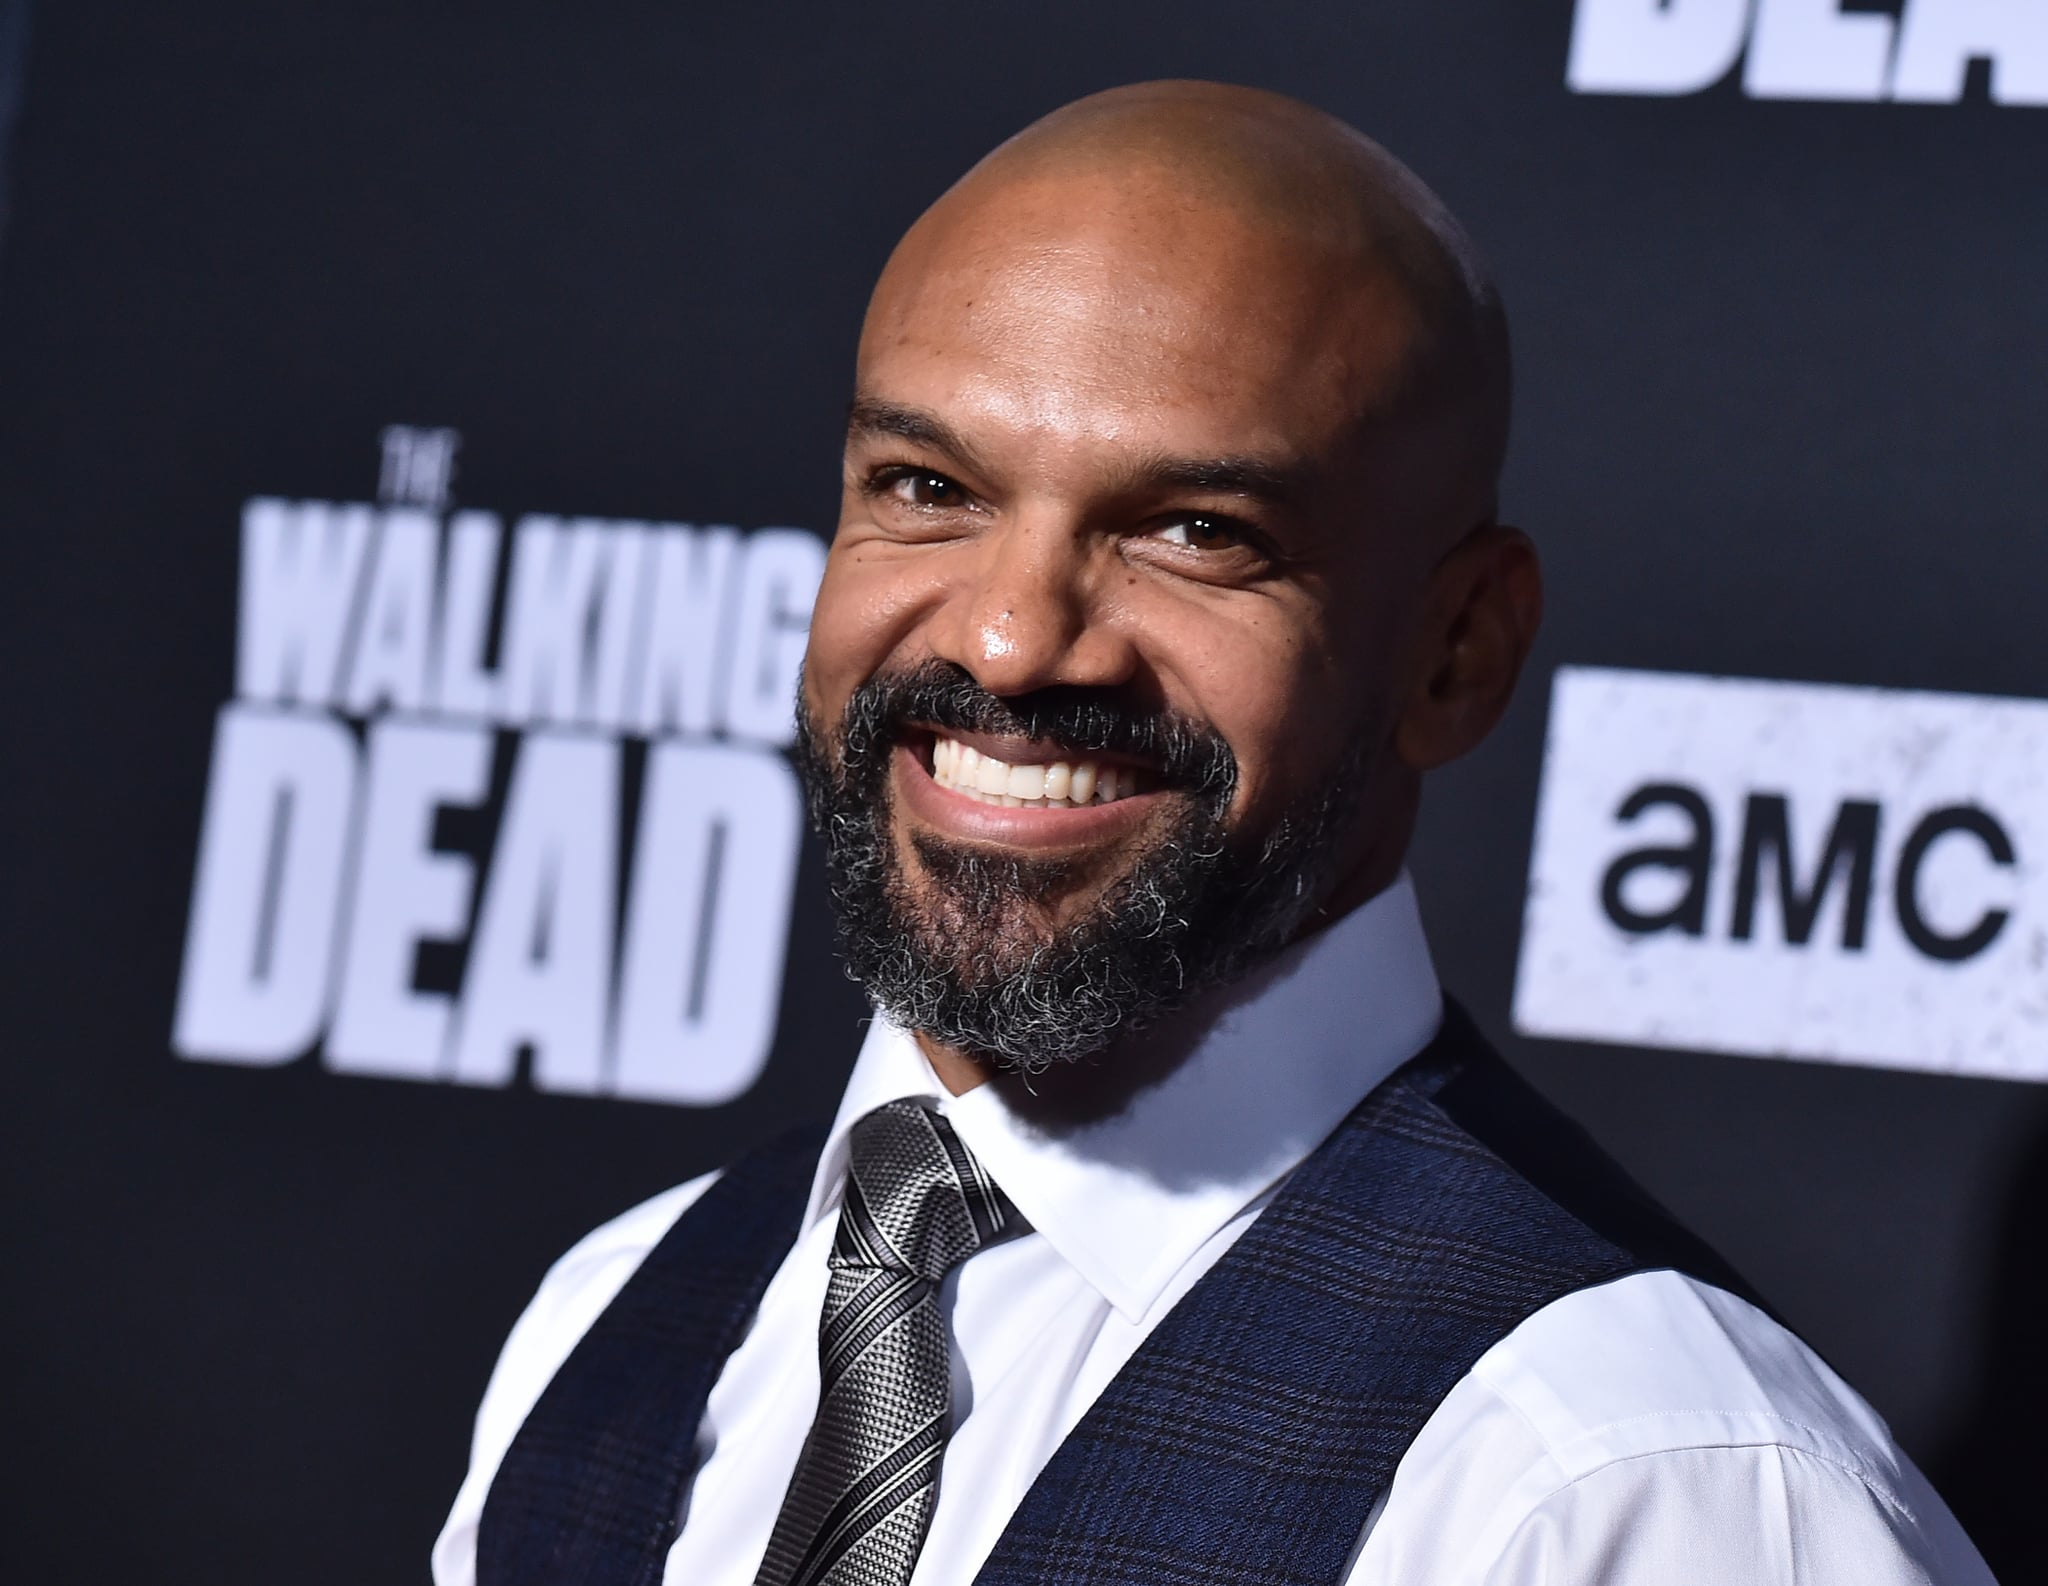 US actor Khary Payton attends the Season 10 Premiere of 'The Walking Dead' at Chinese Theatre in Hollywood, California, on September 23, 2019. (Photo by LISA O'CONNOR / AFP)        (Photo credit should read LISA O'CONNOR/AFP via Getty Images)